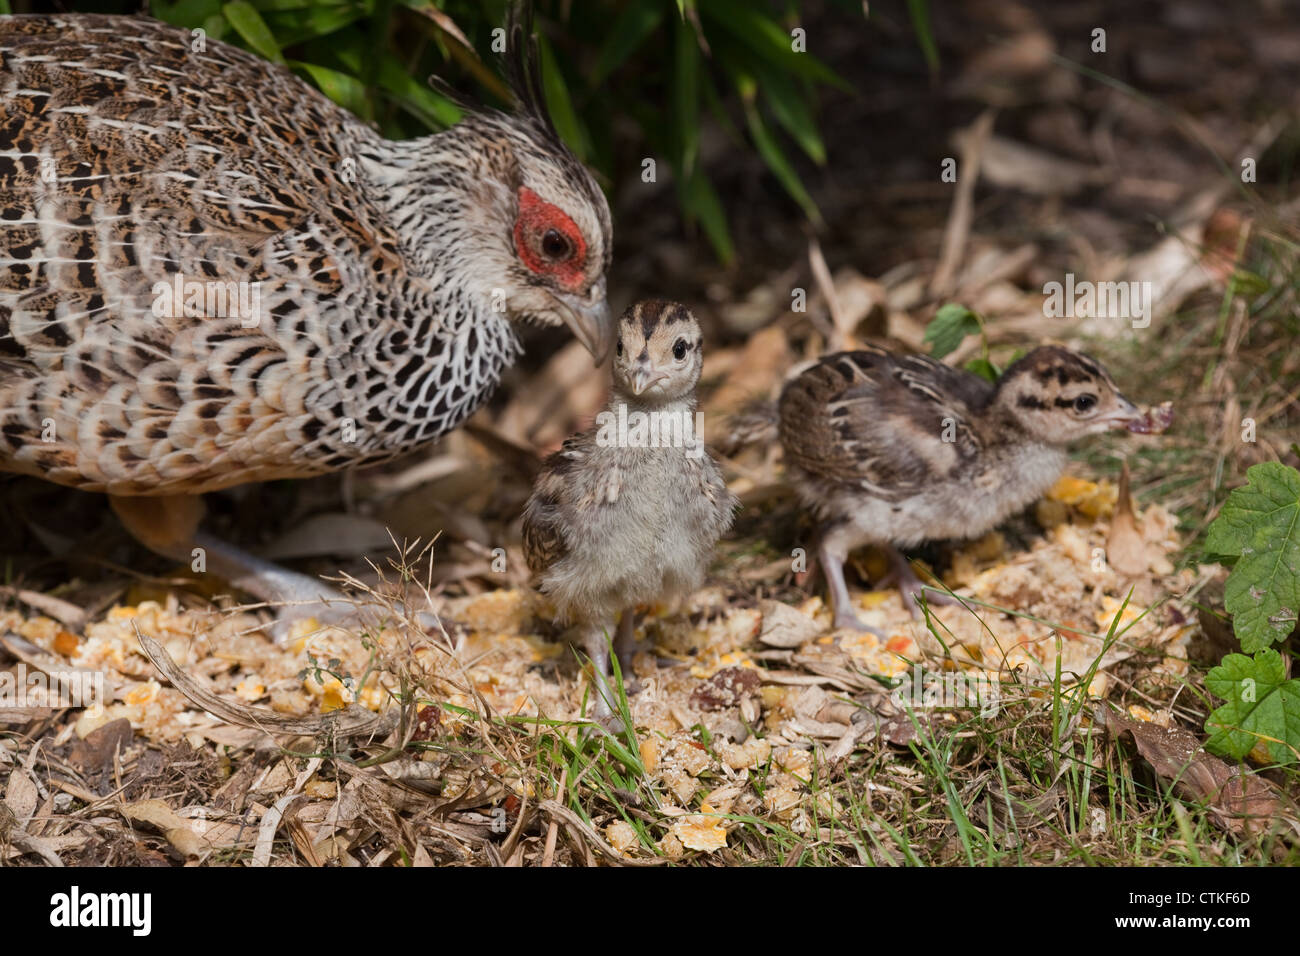 Cheer Pheasant  or Wallich's Pheasant (Catreus wallichii). Hen and chicks. - Stock Image